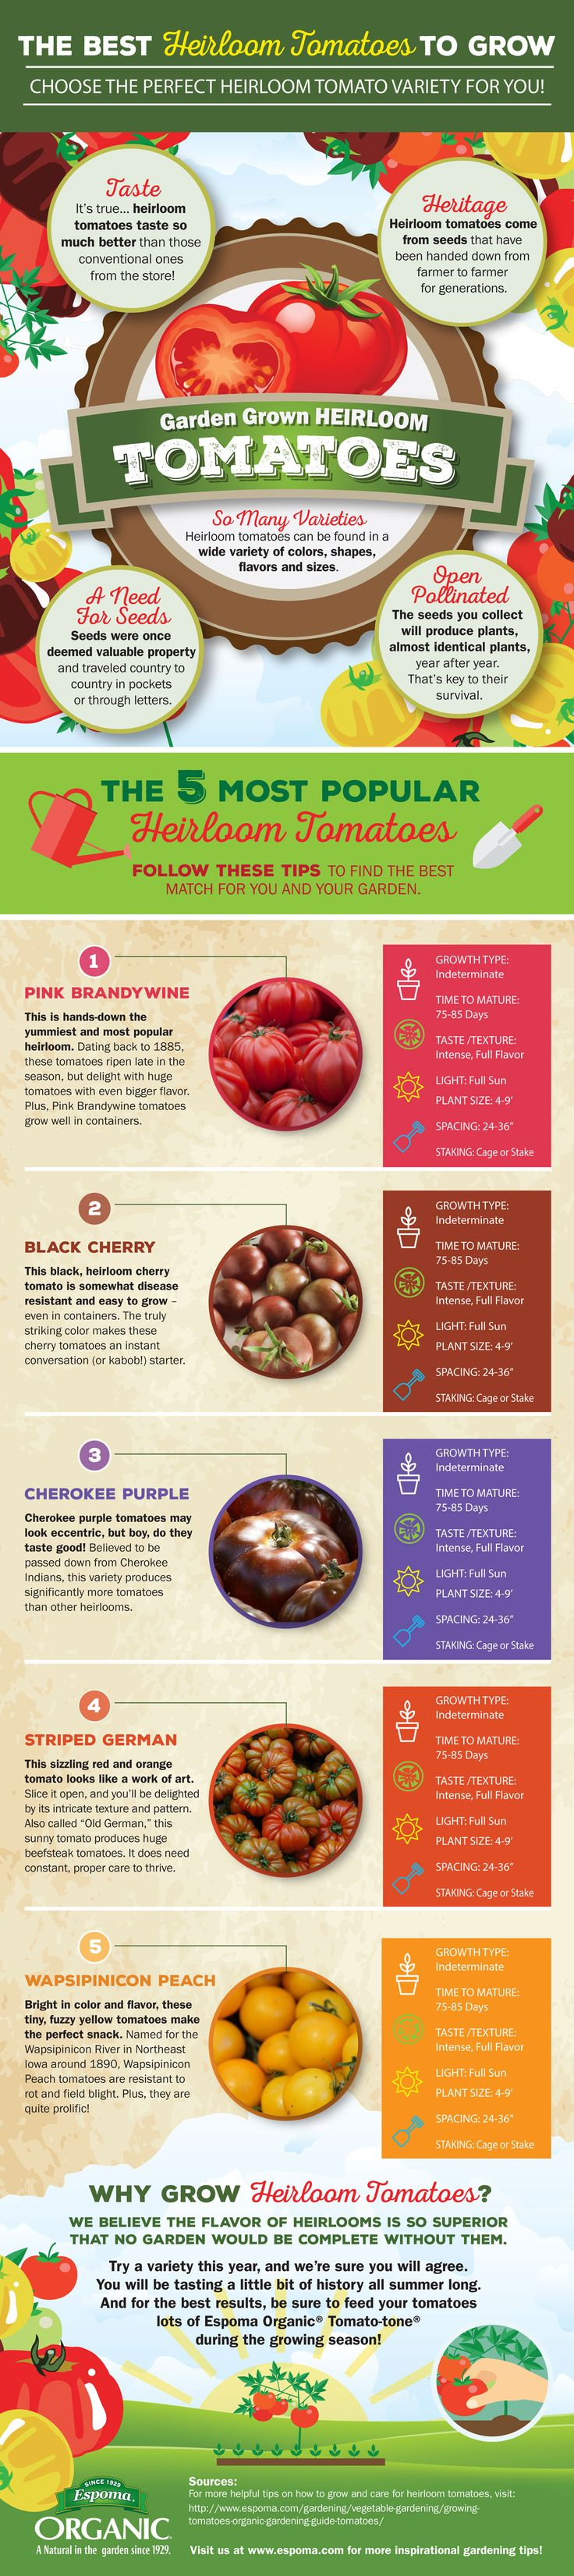 The Best Heirloom Tomatoes to Grow